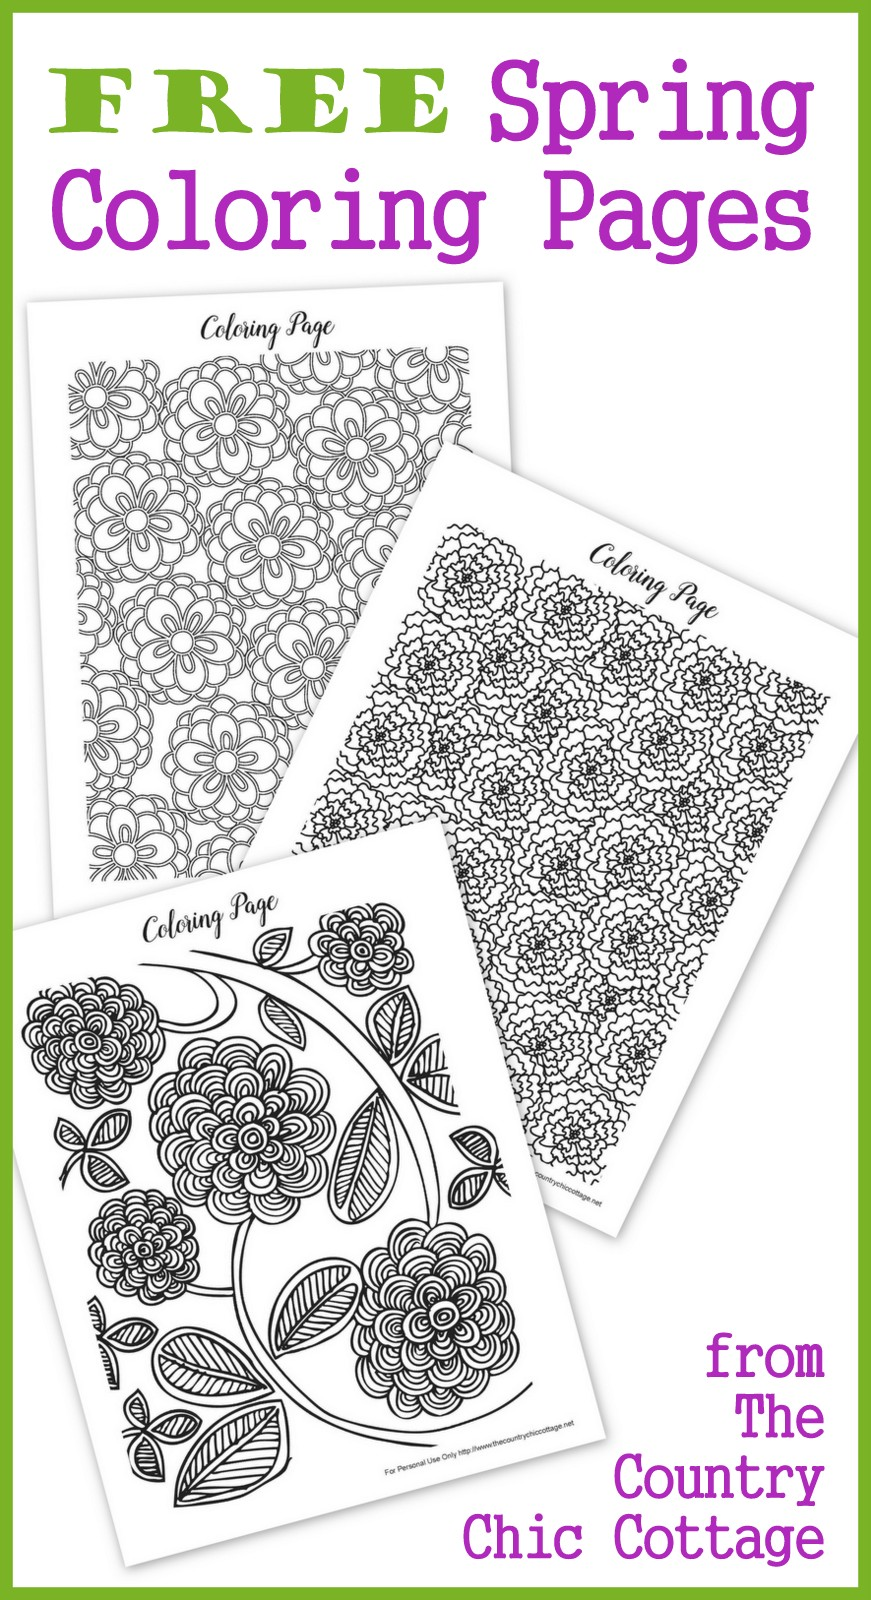 Spring coloring pages for adults free - Free Spring Coloring Pages For Adults